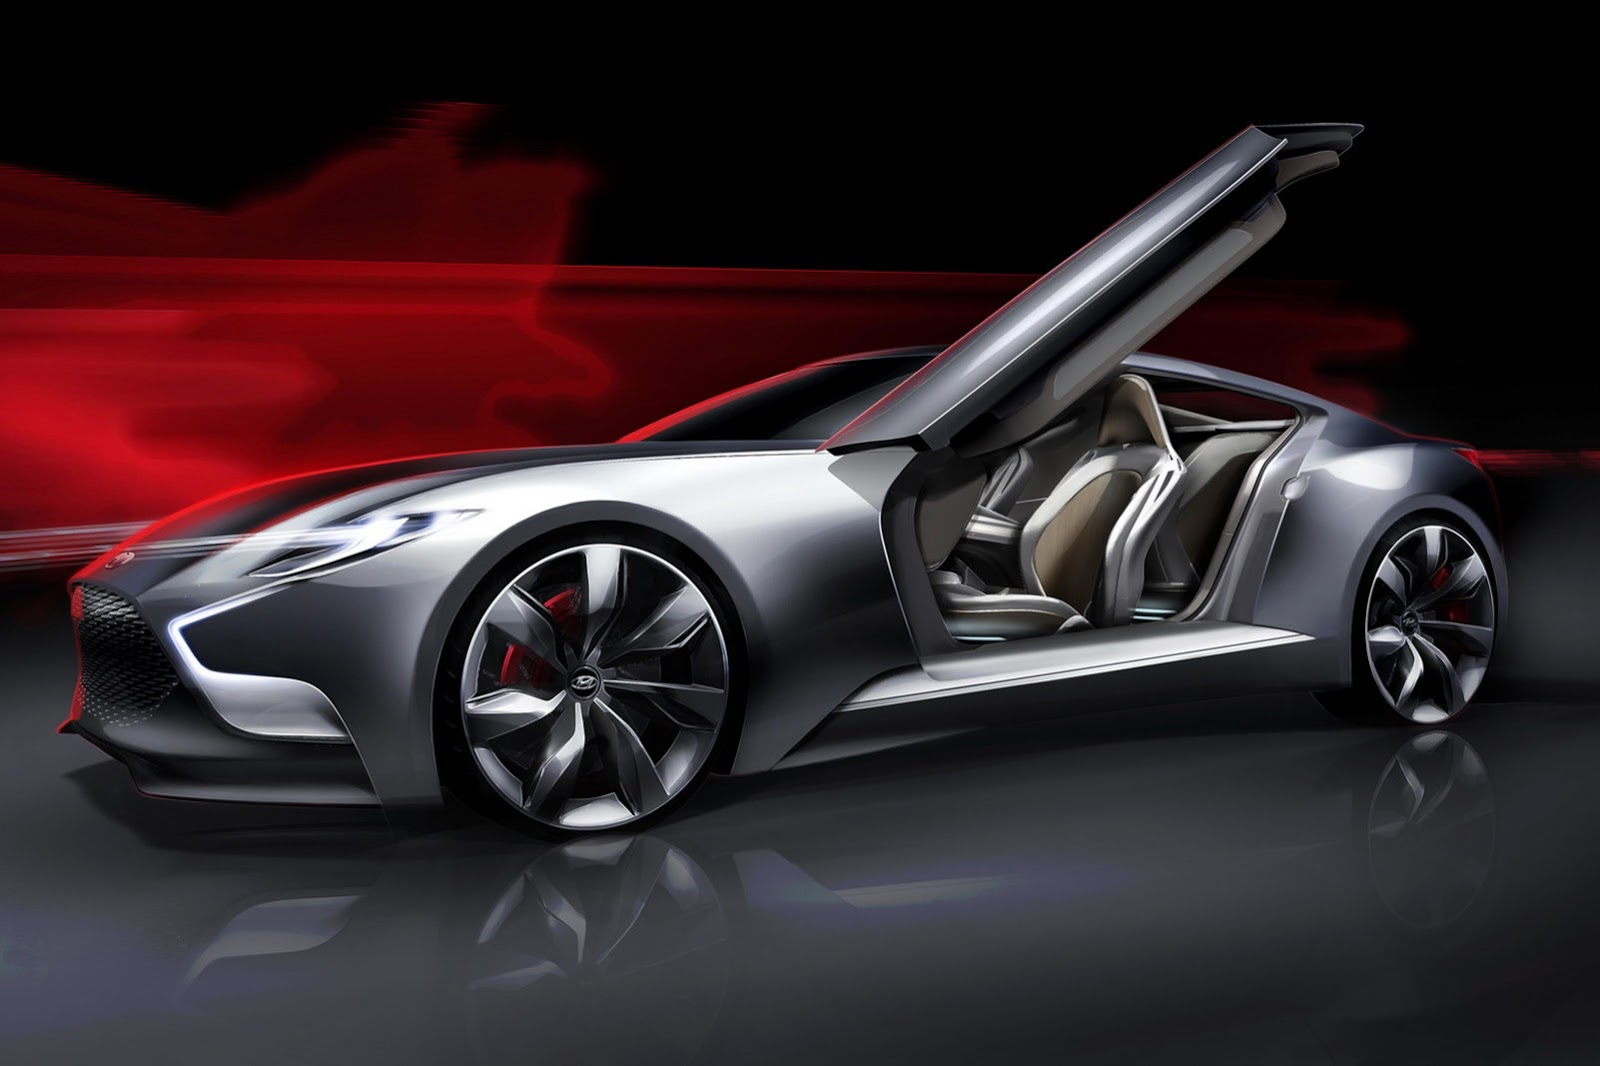 2015 hyundai genesis coupe previewed with hnd 9 concept. Black Bedroom Furniture Sets. Home Design Ideas